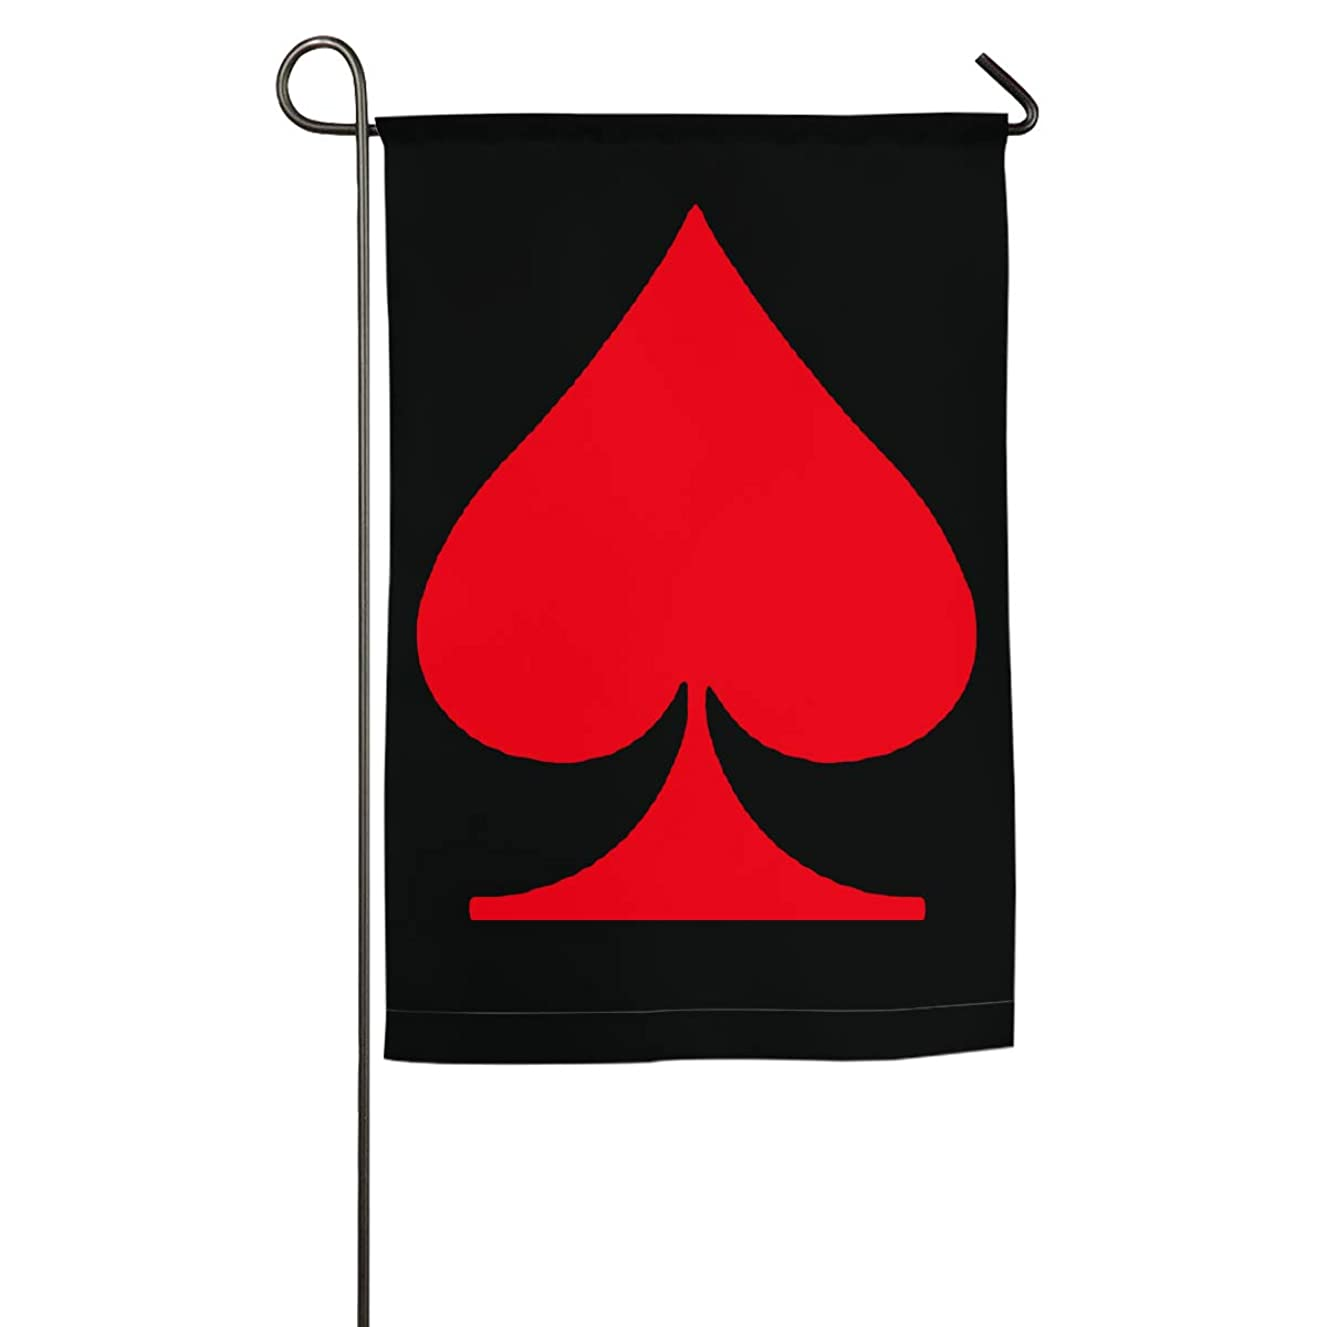 WCVDXFVVCQZ Vintage Red Spade Ace Red Poker House Home 30x45CM Garden Flag